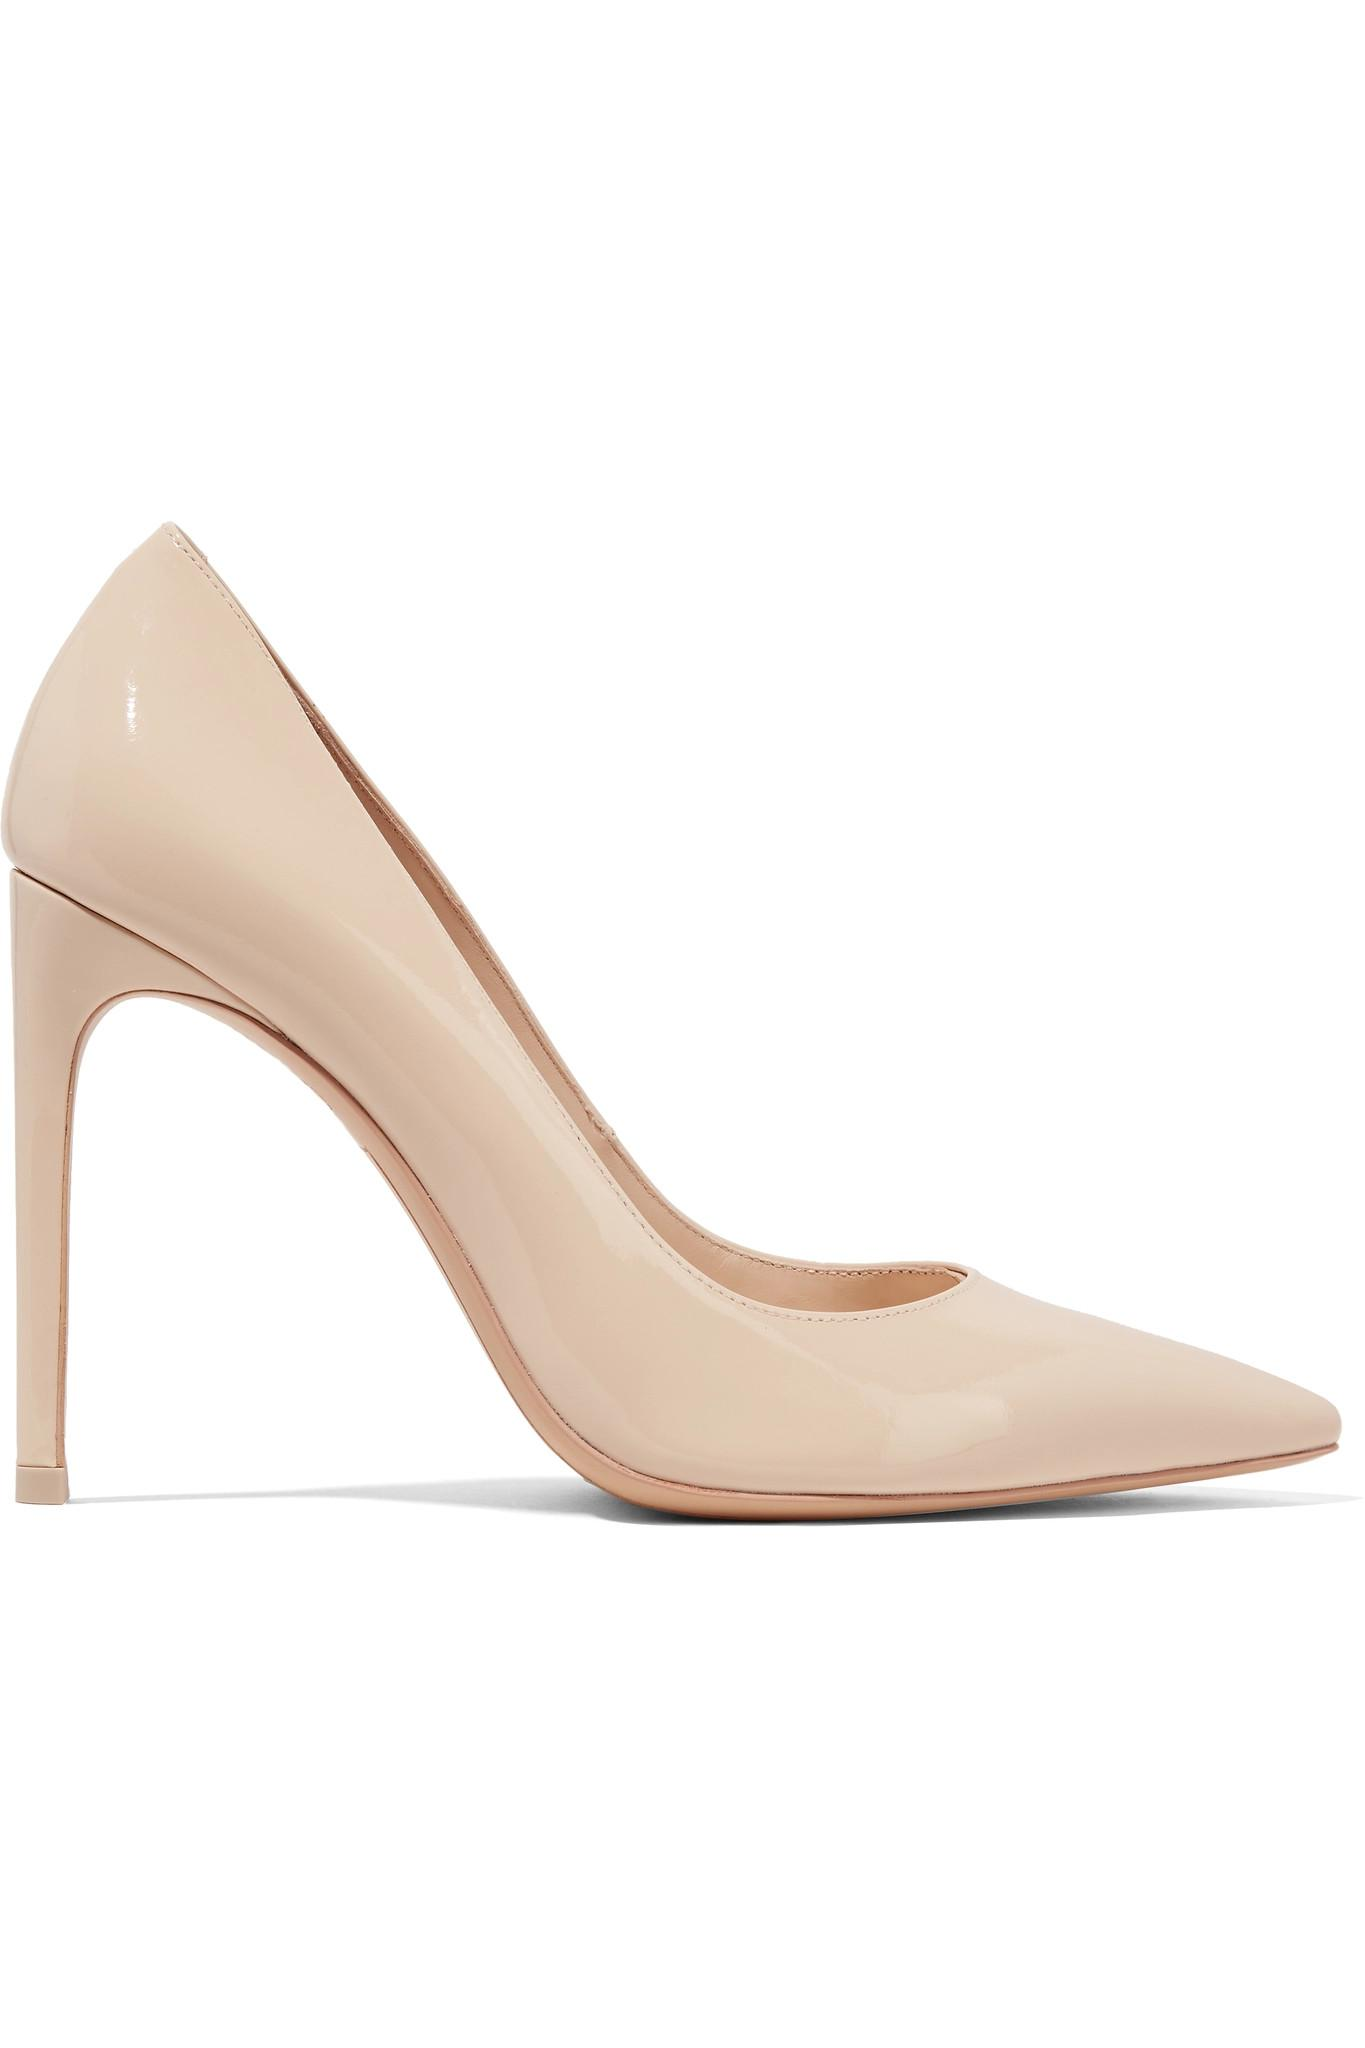 6c96ed3e165 Lyst - Sophia Webster Rio Patent-leather Pumps in Natural